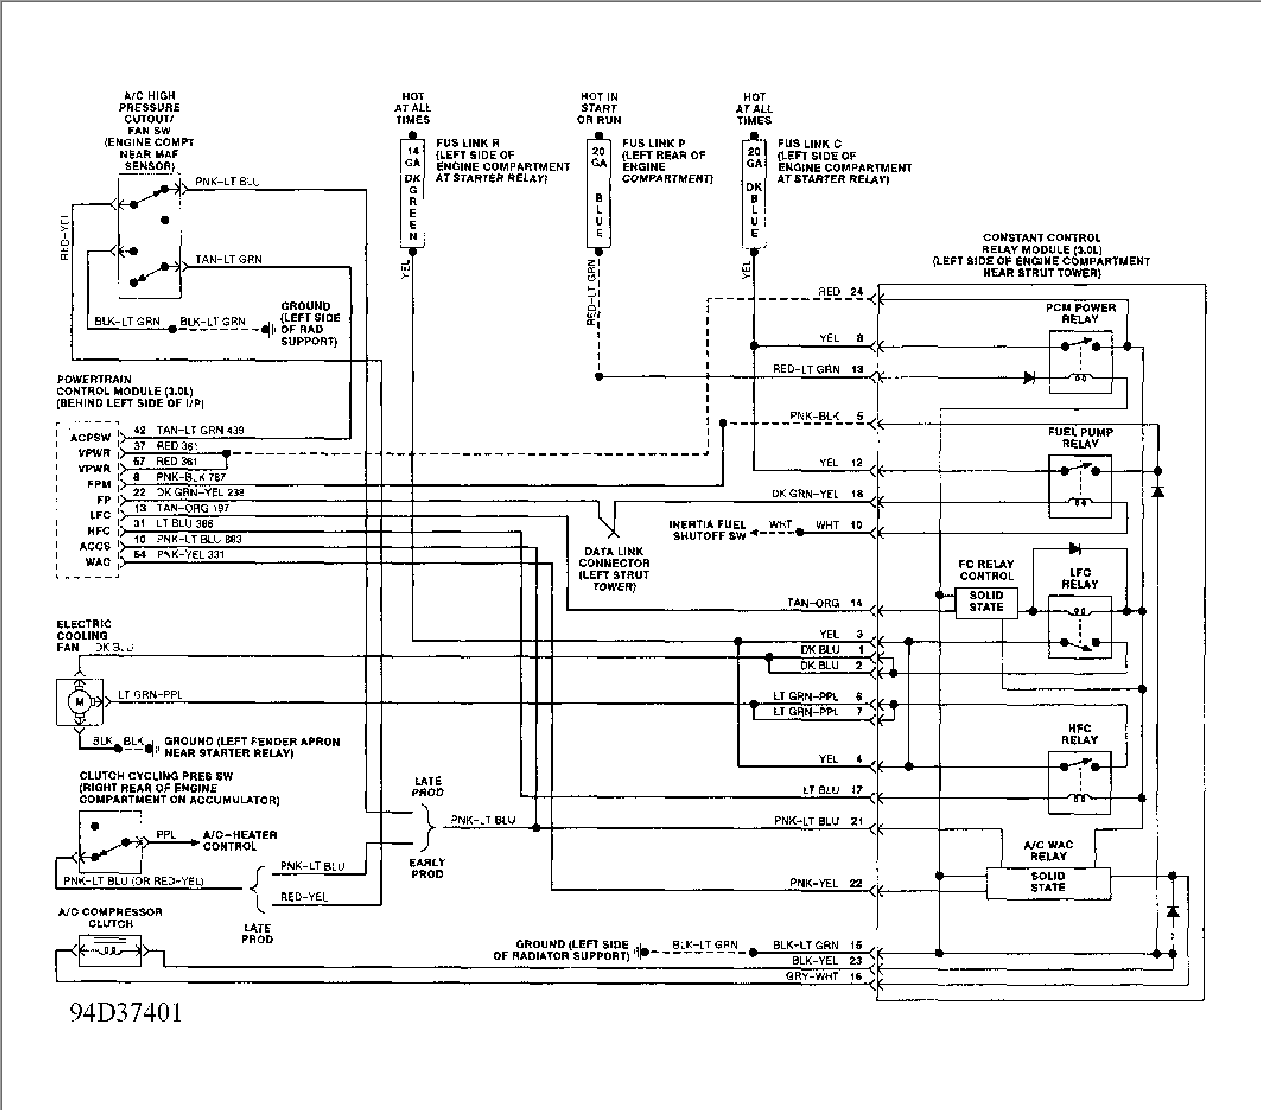 Ford E 350 Van Wiring Diagram 1992 Tempo Schematic Just Data 1994 Chevy Caprice